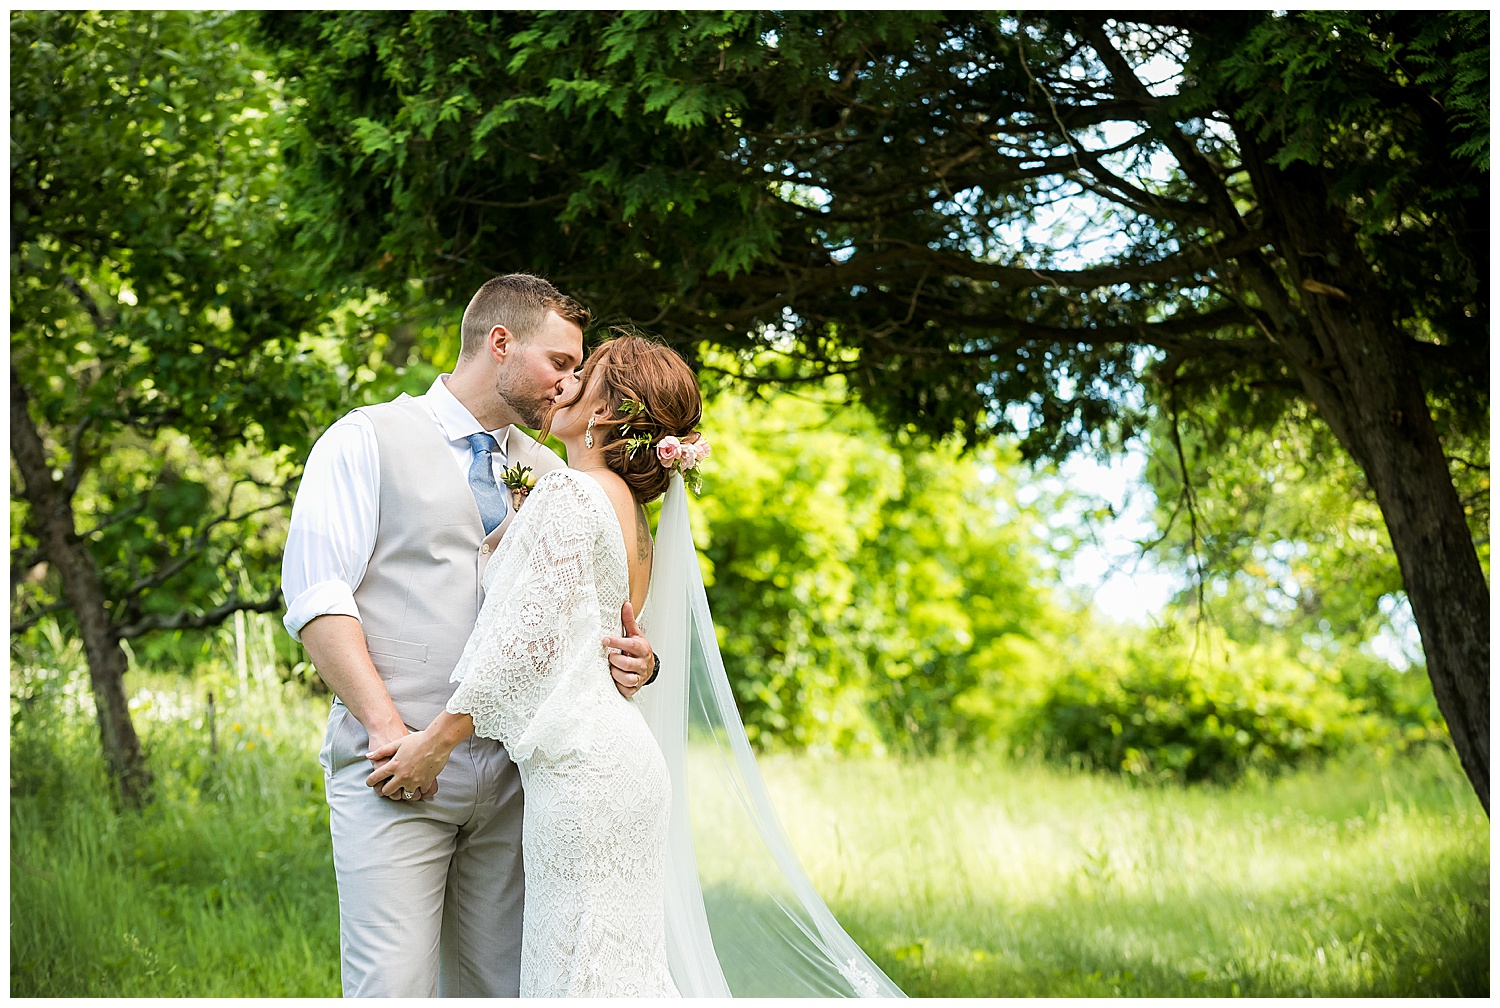 Deanna & Patrick – Valley View Farm Weddings